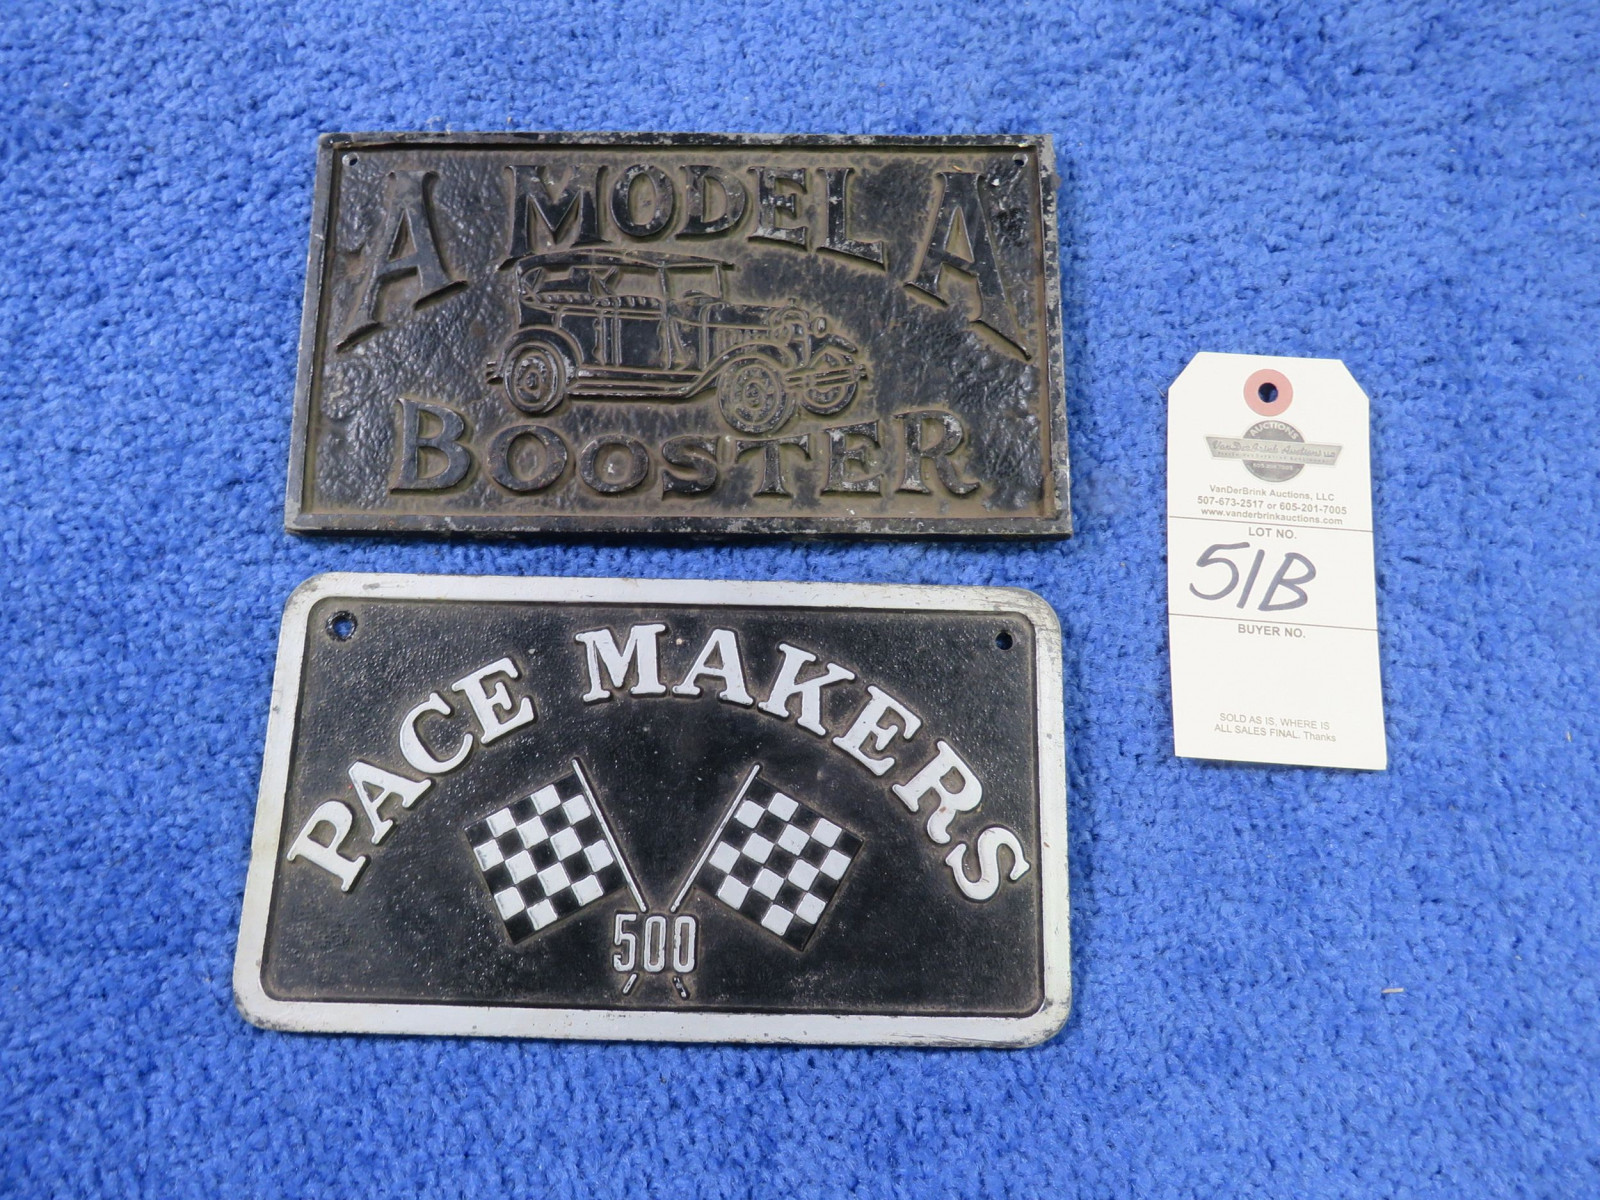 Model A Boosters and Pace Makers 500 Vintage Vehicle Club Plates- Pot Metal - Image 1